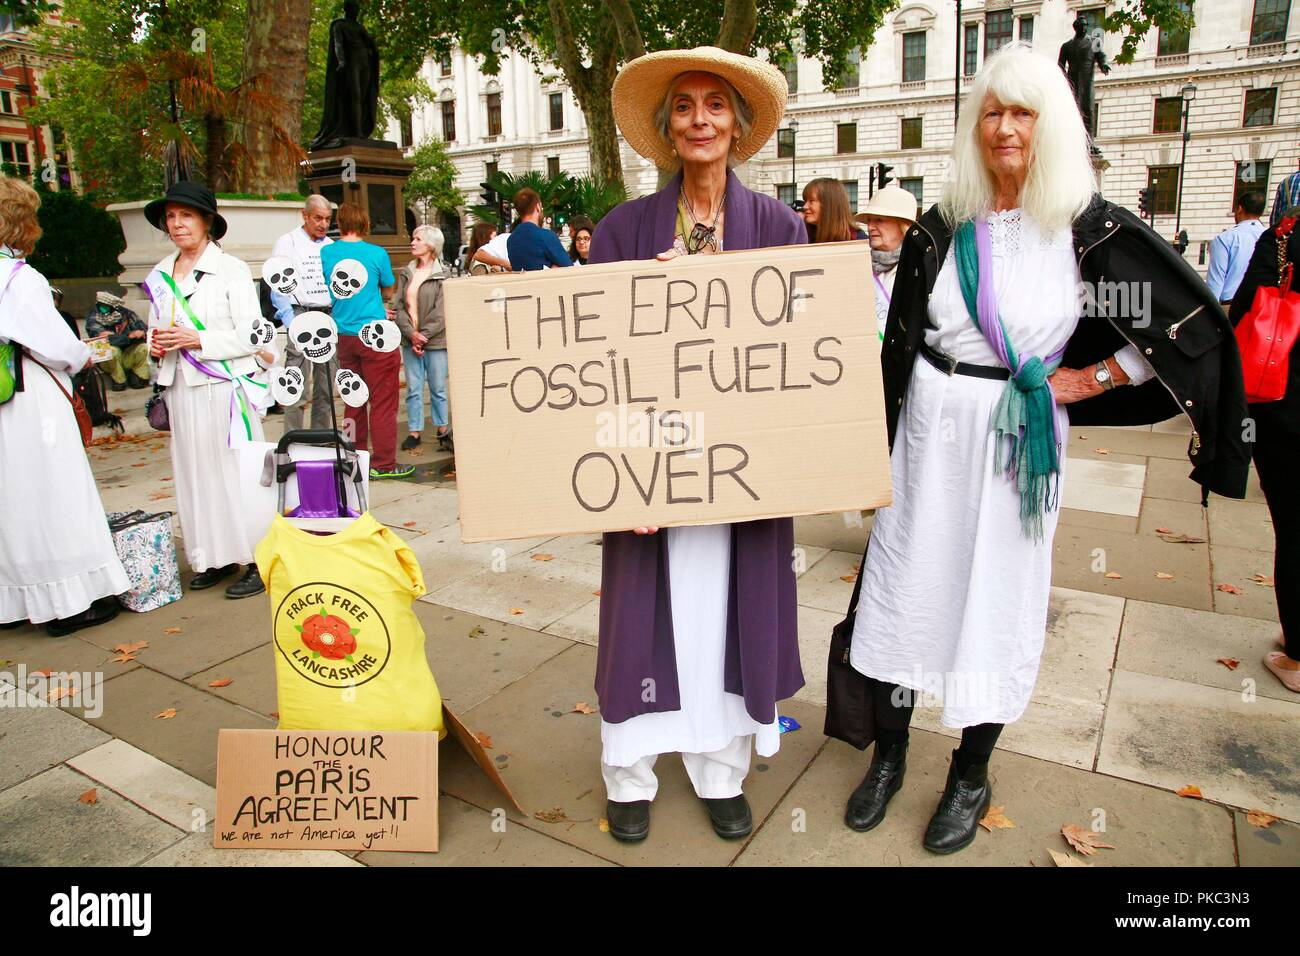 London, UK. 12th Sep 2018. 12/09/2018 100 Women against Fracking, Parliament Square Credit: Natasha Quarmby/Alamy Live News - Stock Image